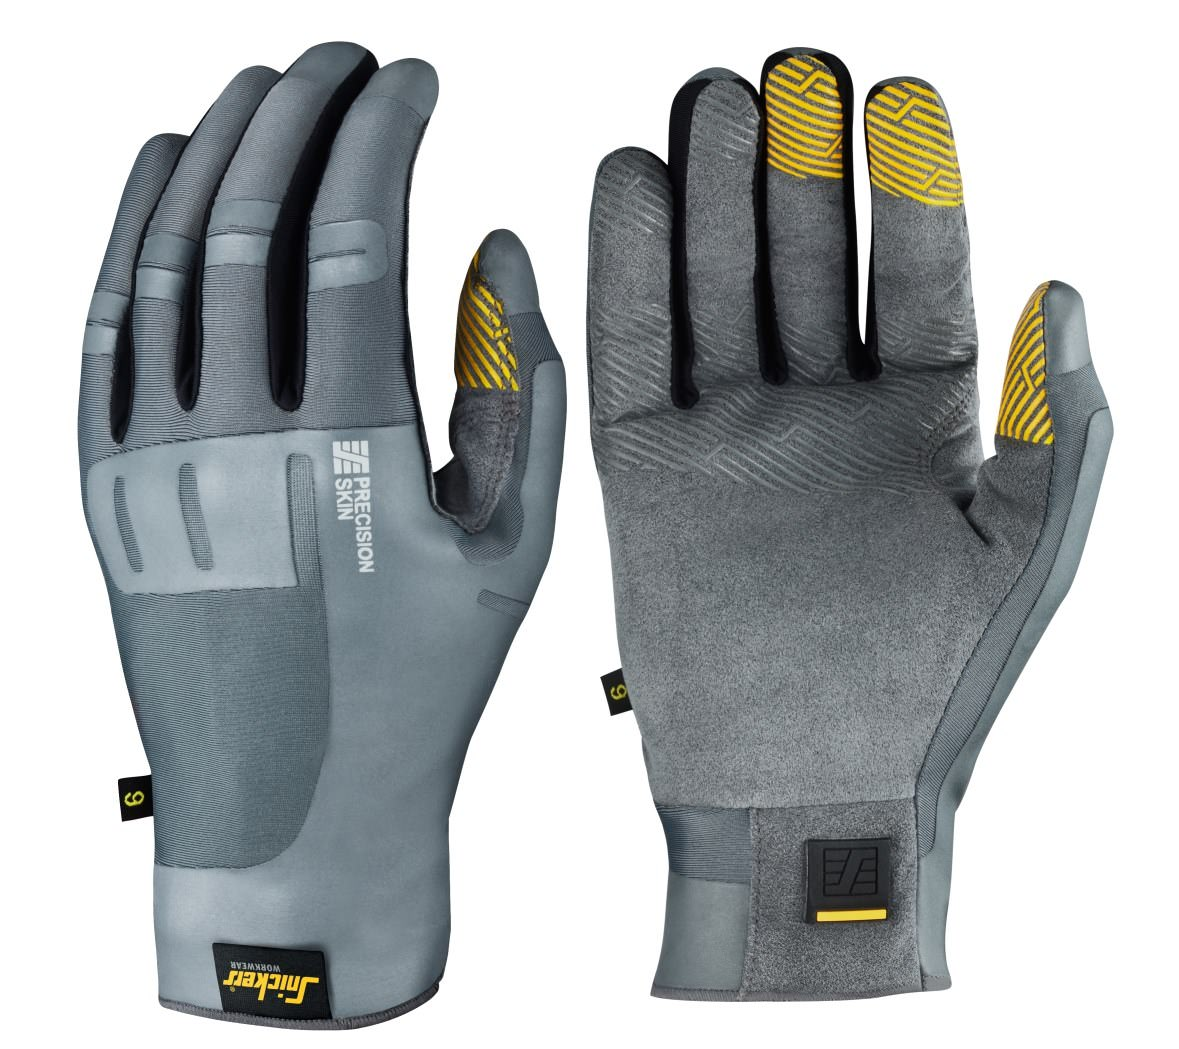 Snickers 9571 Precision Skin Gloves